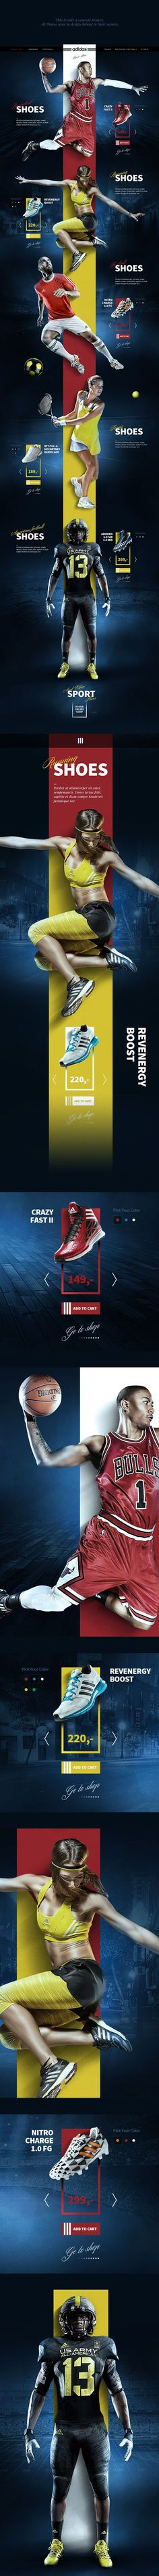 Sport Shoes Concept on Adweek Talent Gallery